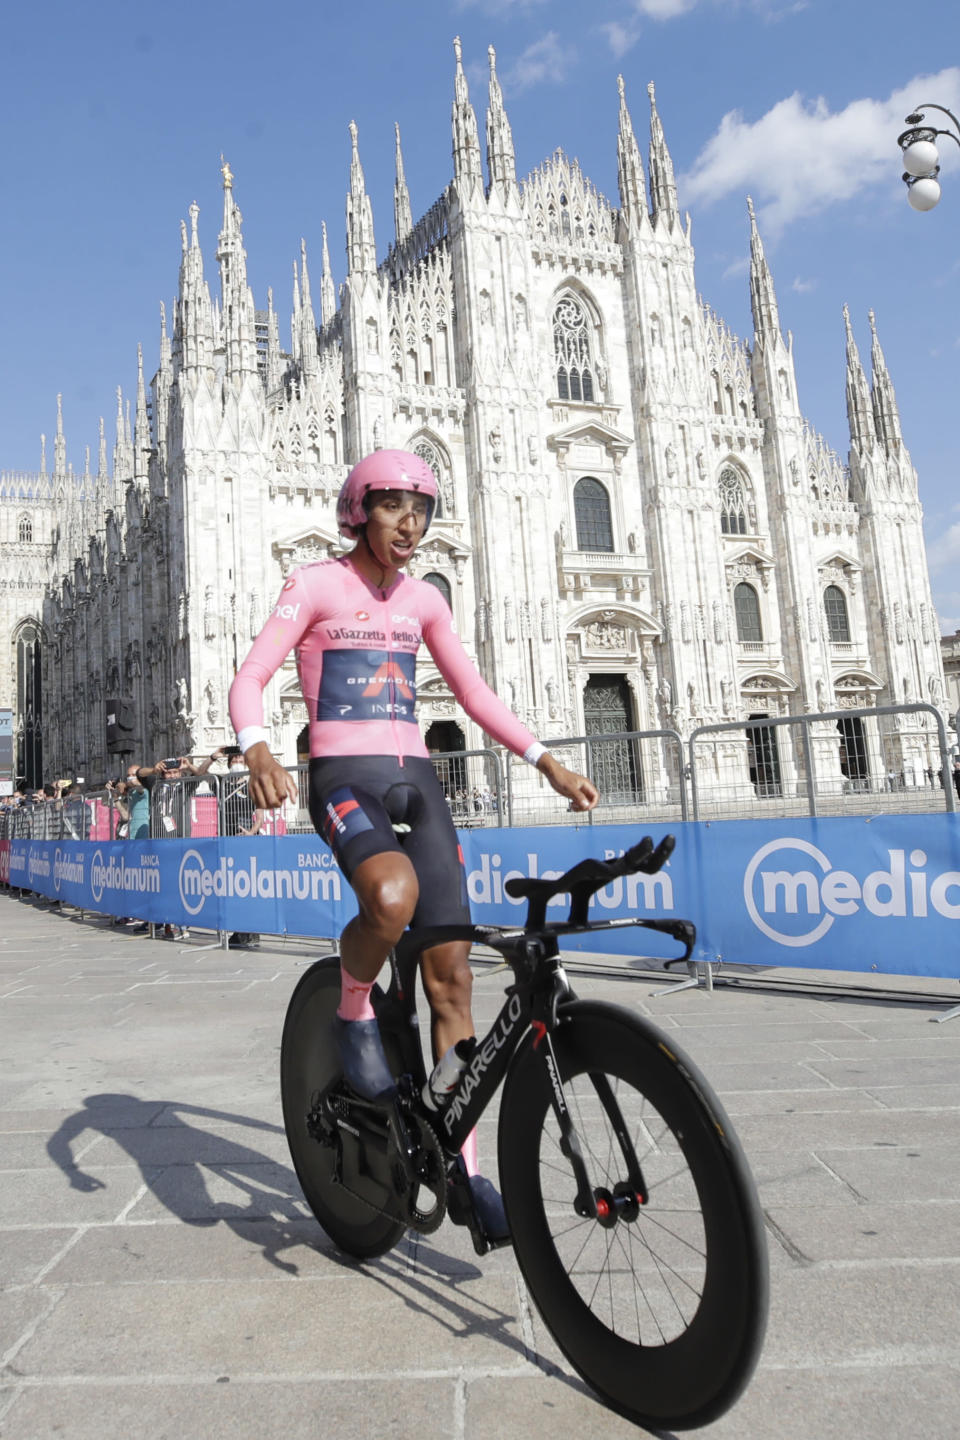 Colombia's Egan Bernal celebrates as he completes the final stage to win the Giro d'Italia cycling race, a 30.3 kilometers individual time trial from Senago to Milan, Italy, Sunday, May 30, 2021. (AP Photo/Luca Bruno)